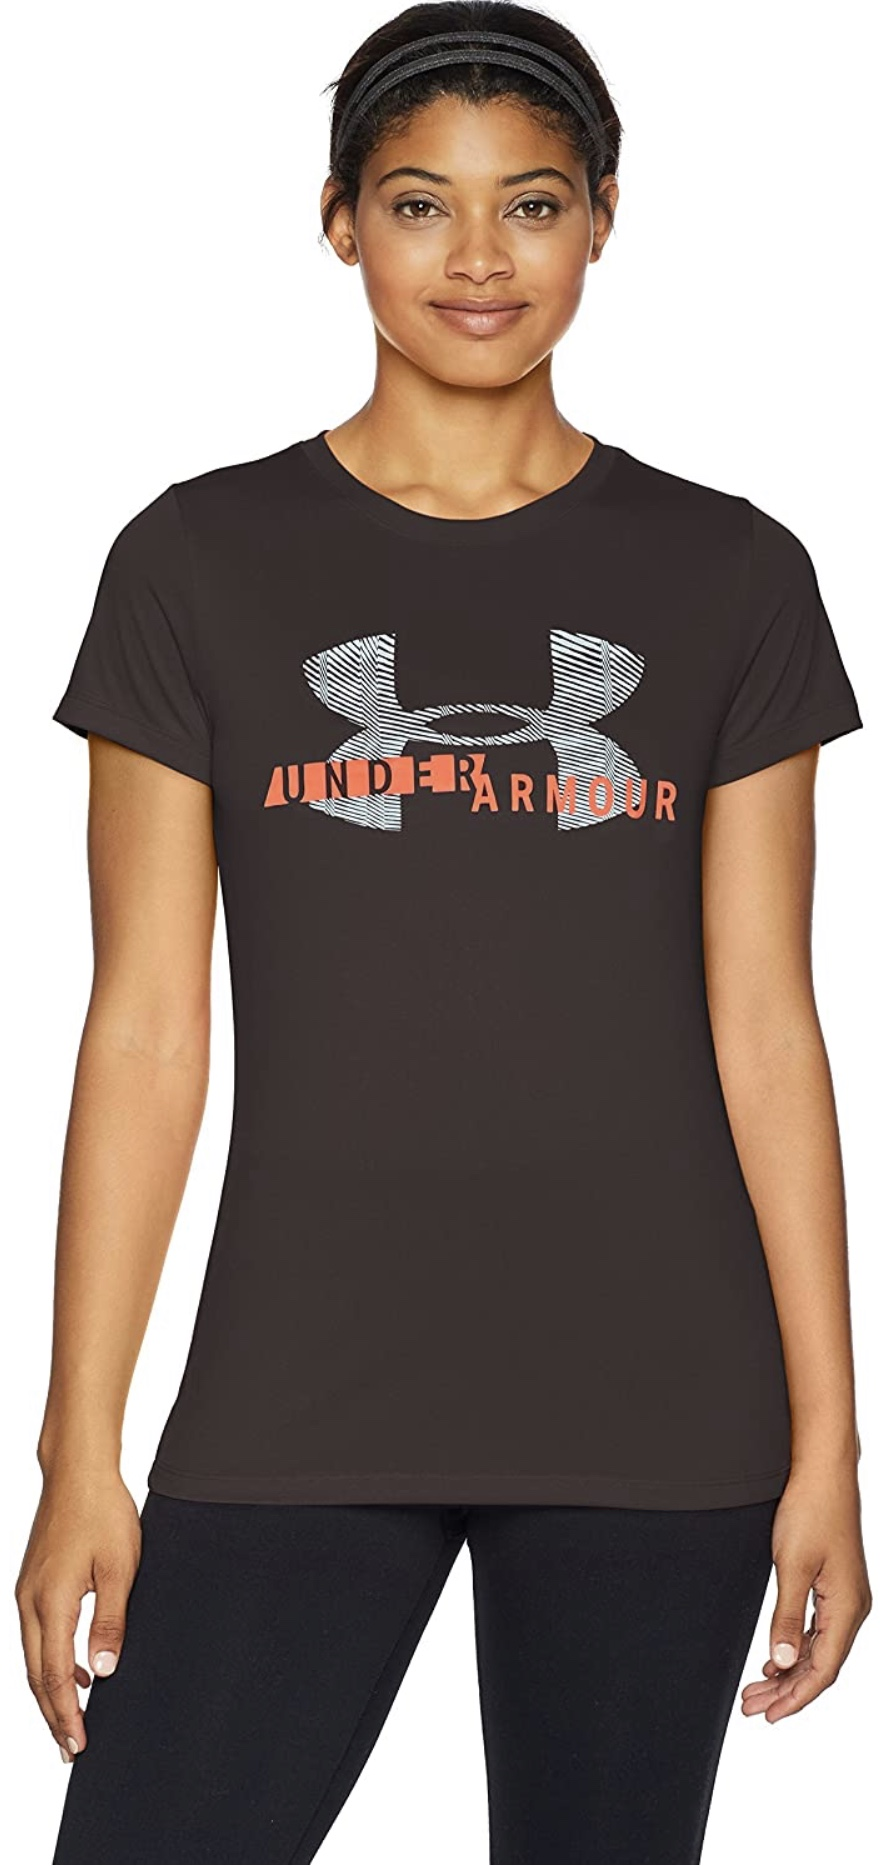 Under Armour Tech Short Sleeve Crew Graphic T-Shirt